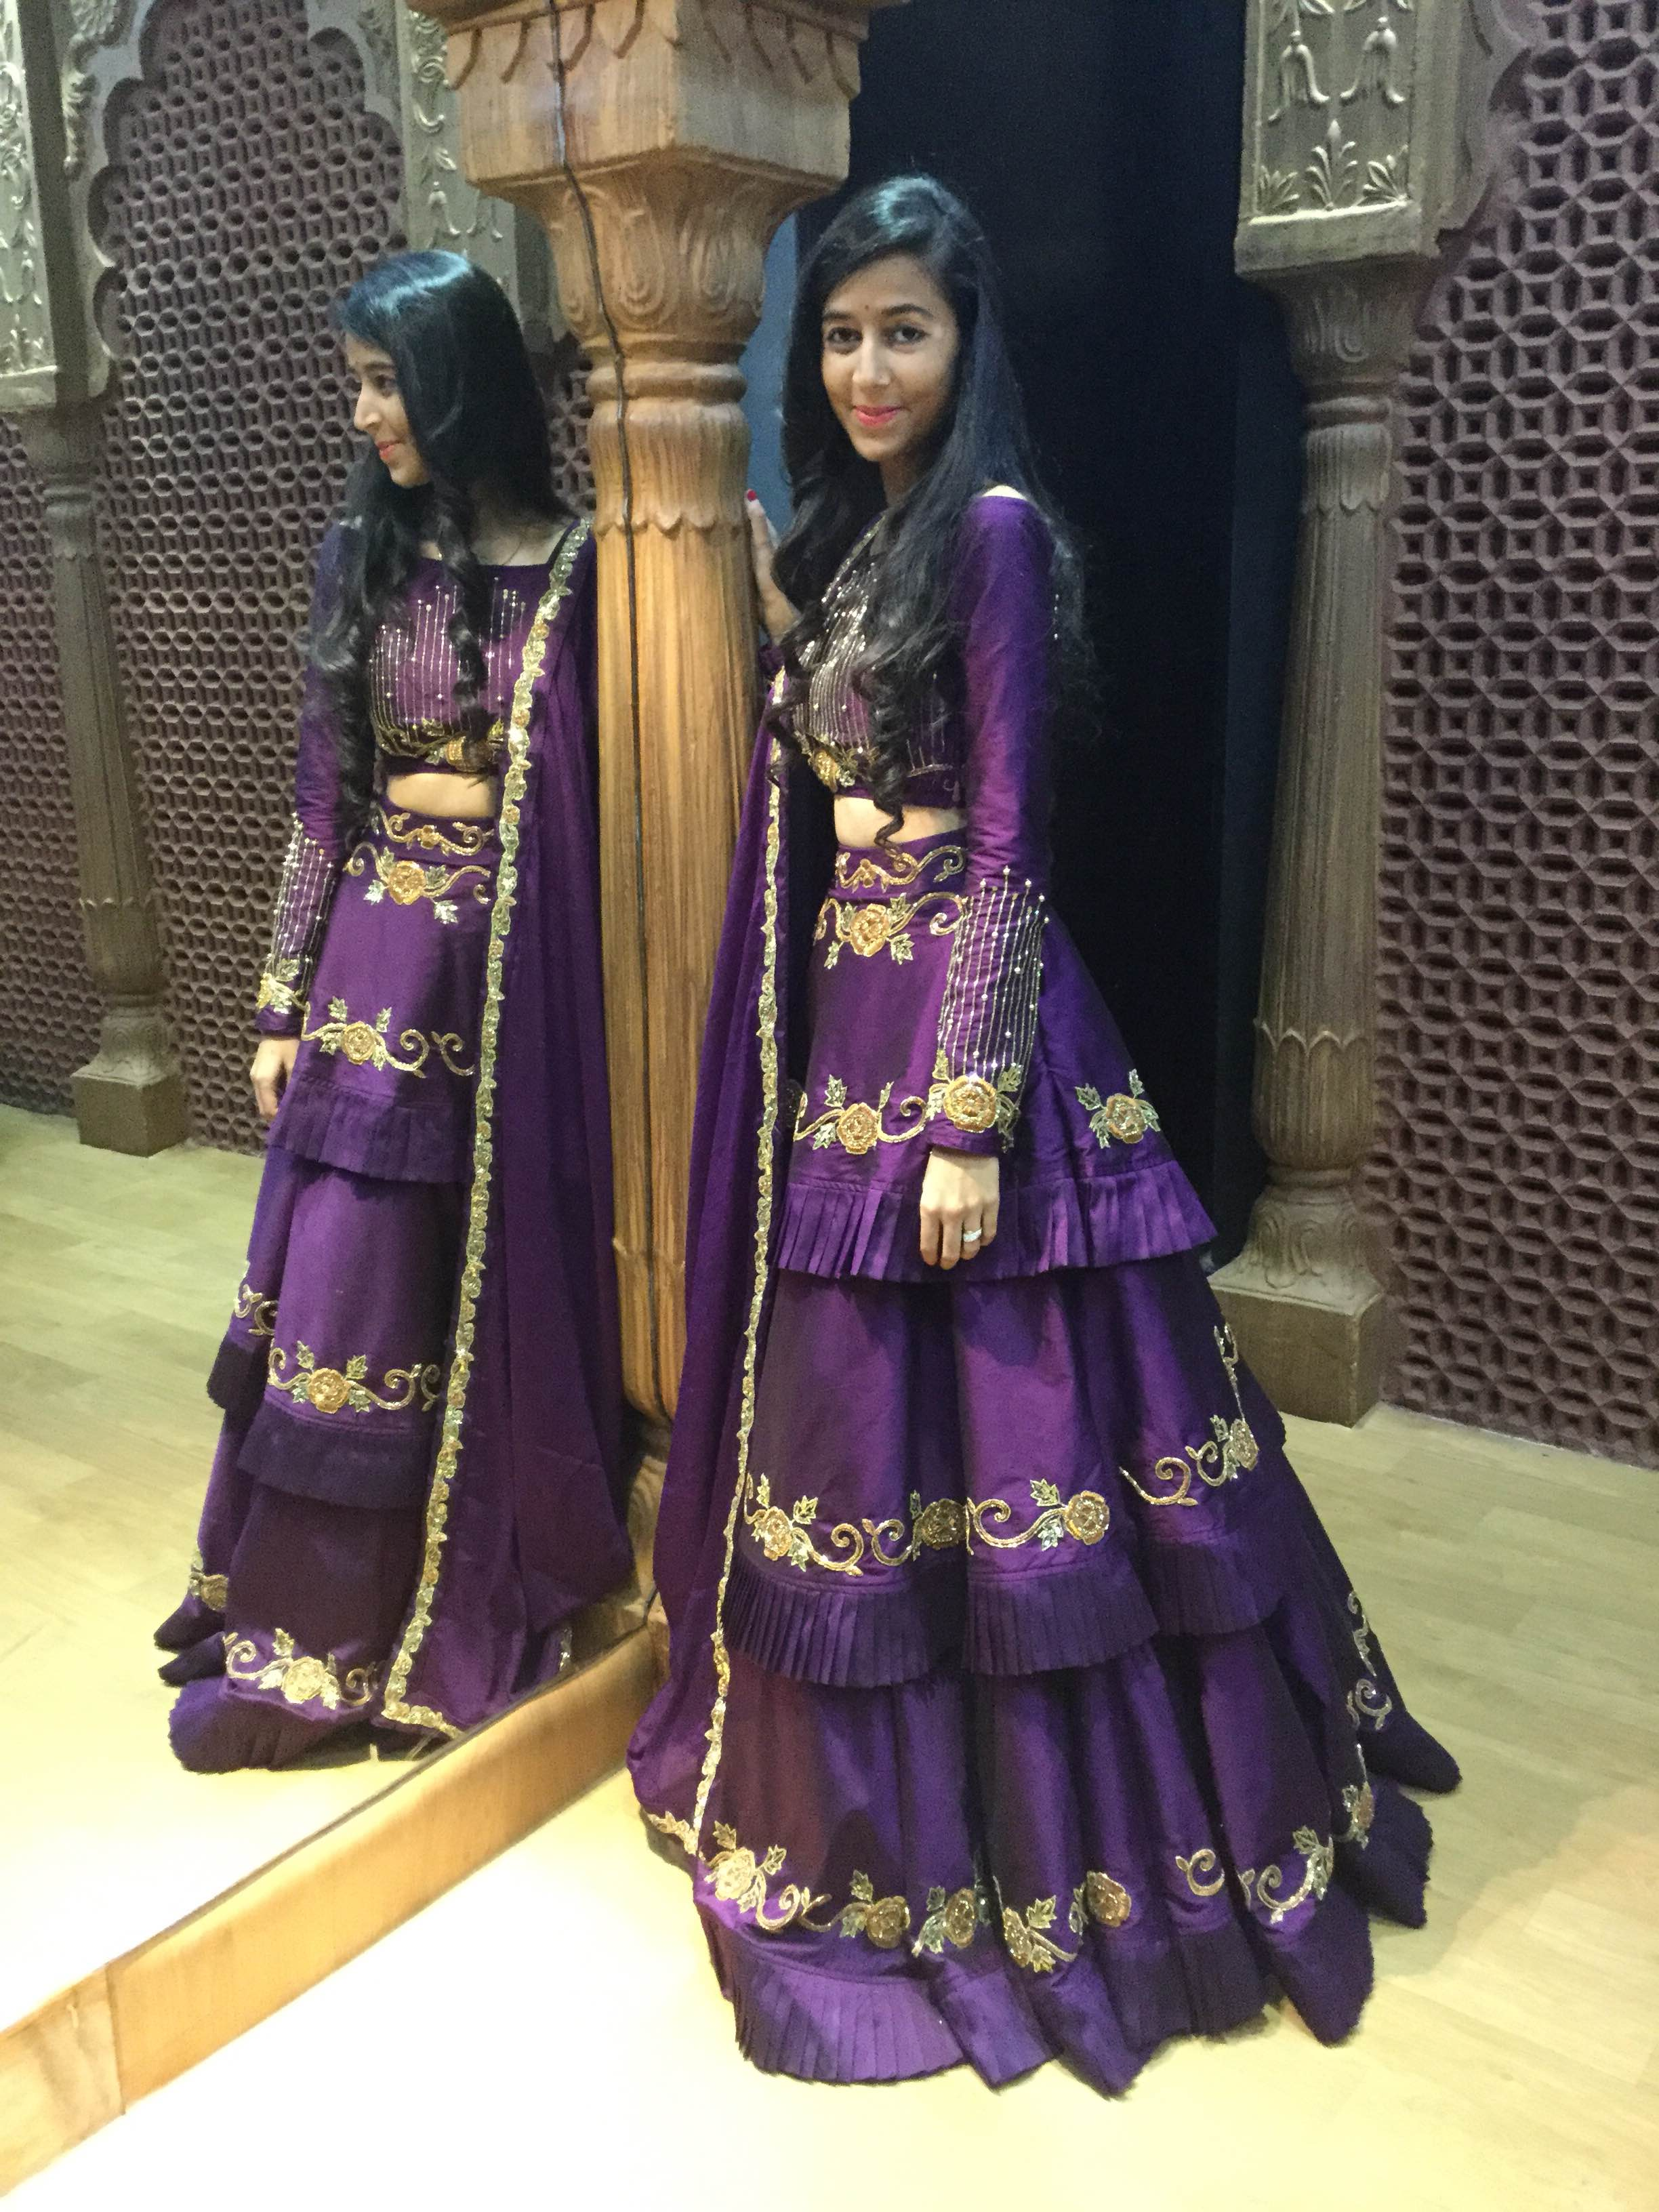 Designer Ethnic Indowestern Lehenga  This beautiful purple grape wine colour multiflair multilayer skirt Lehenga cum indowestern give u a different traditional cum retro look with zardozzi handwork in each layer and a designer blouse pattern with full sleeves and a Dupatta with handwork all over the Dupatta